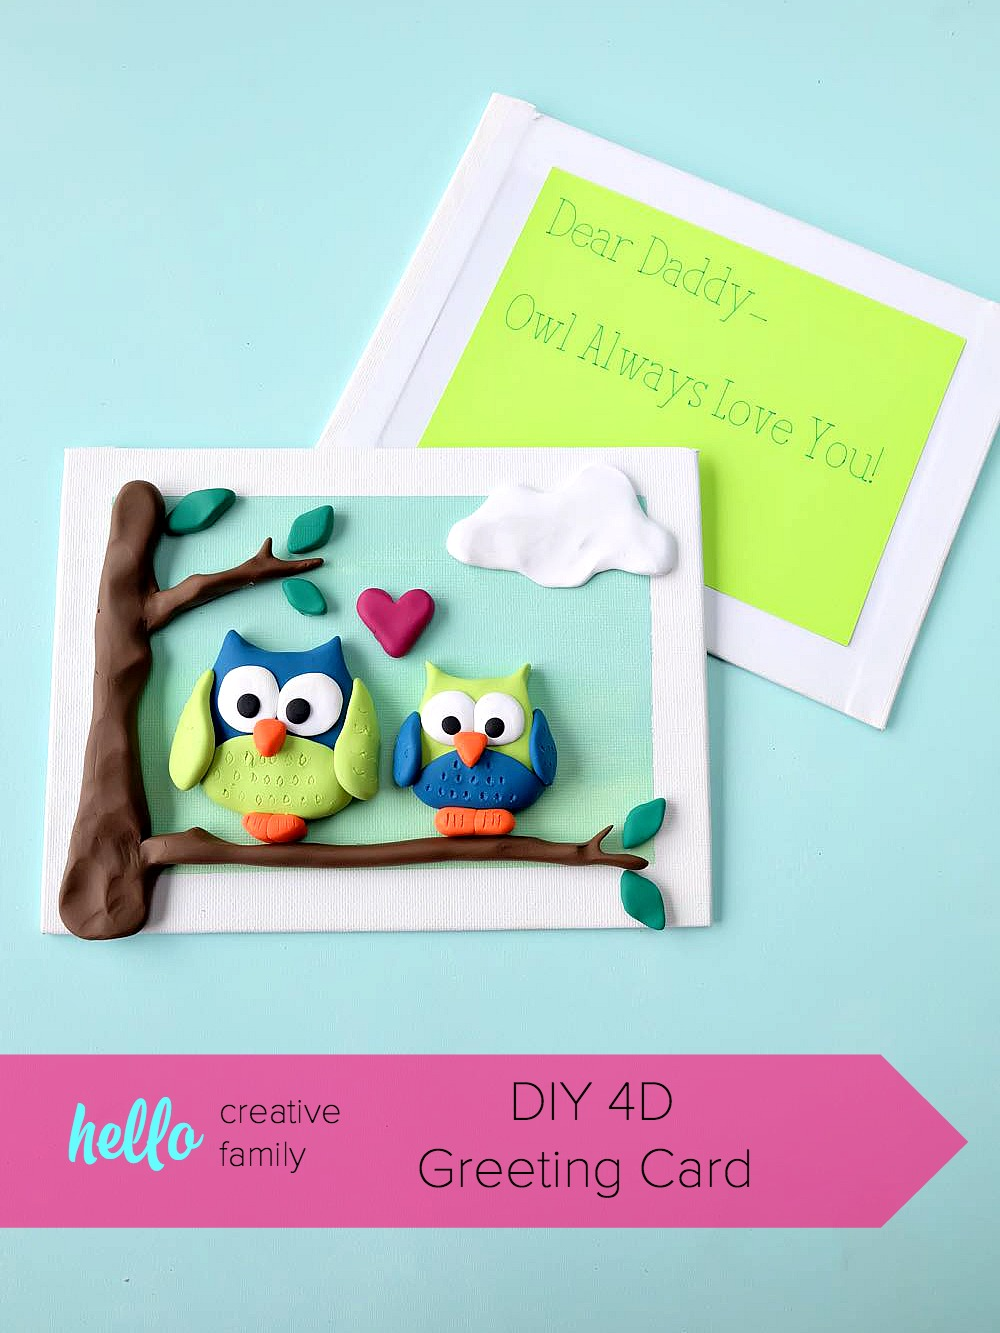 Diy 4d Greeting Card Hello Creative Family